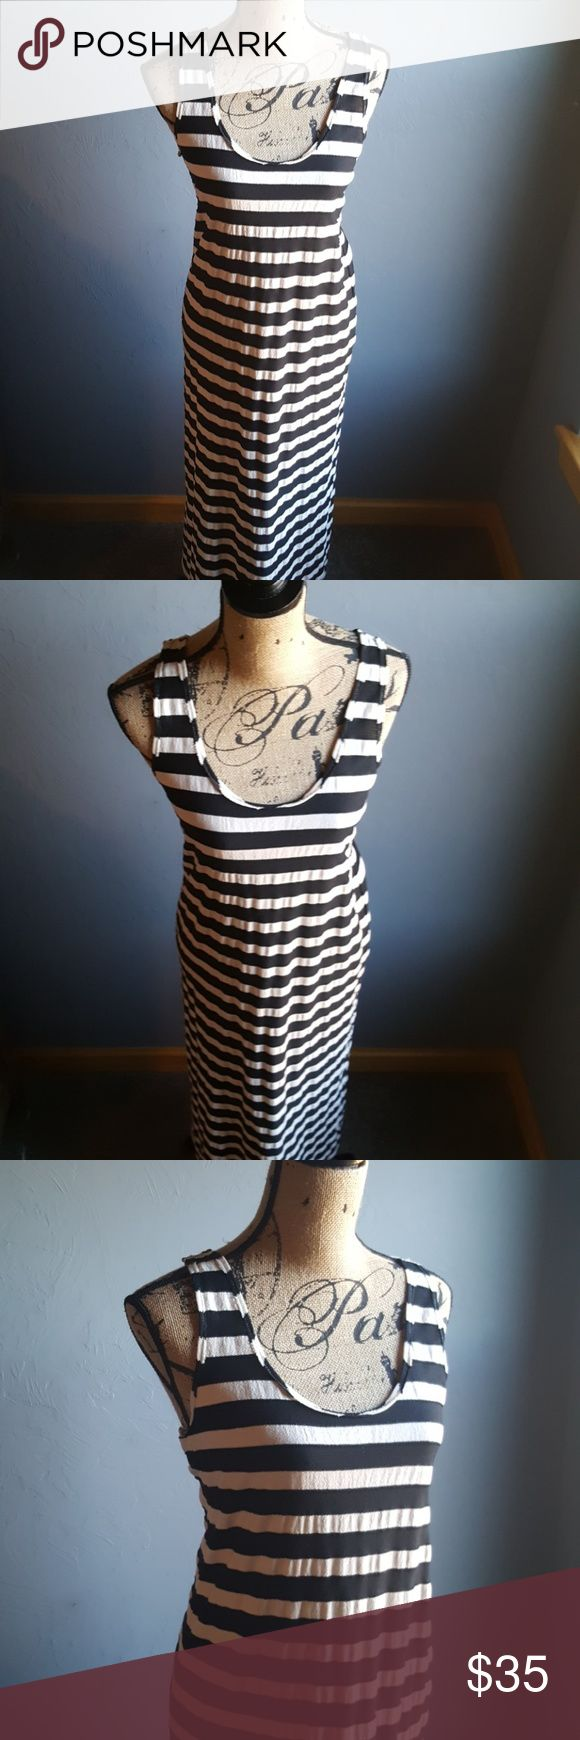 """Anthro Claeson Blank and White Stripe Beach Dress Stylish and classic Racer back Thick-ish material  Anthropologie Claeson Brand Bust 18"""" Length 56"""" Anthropologie Dresses Maxi"""